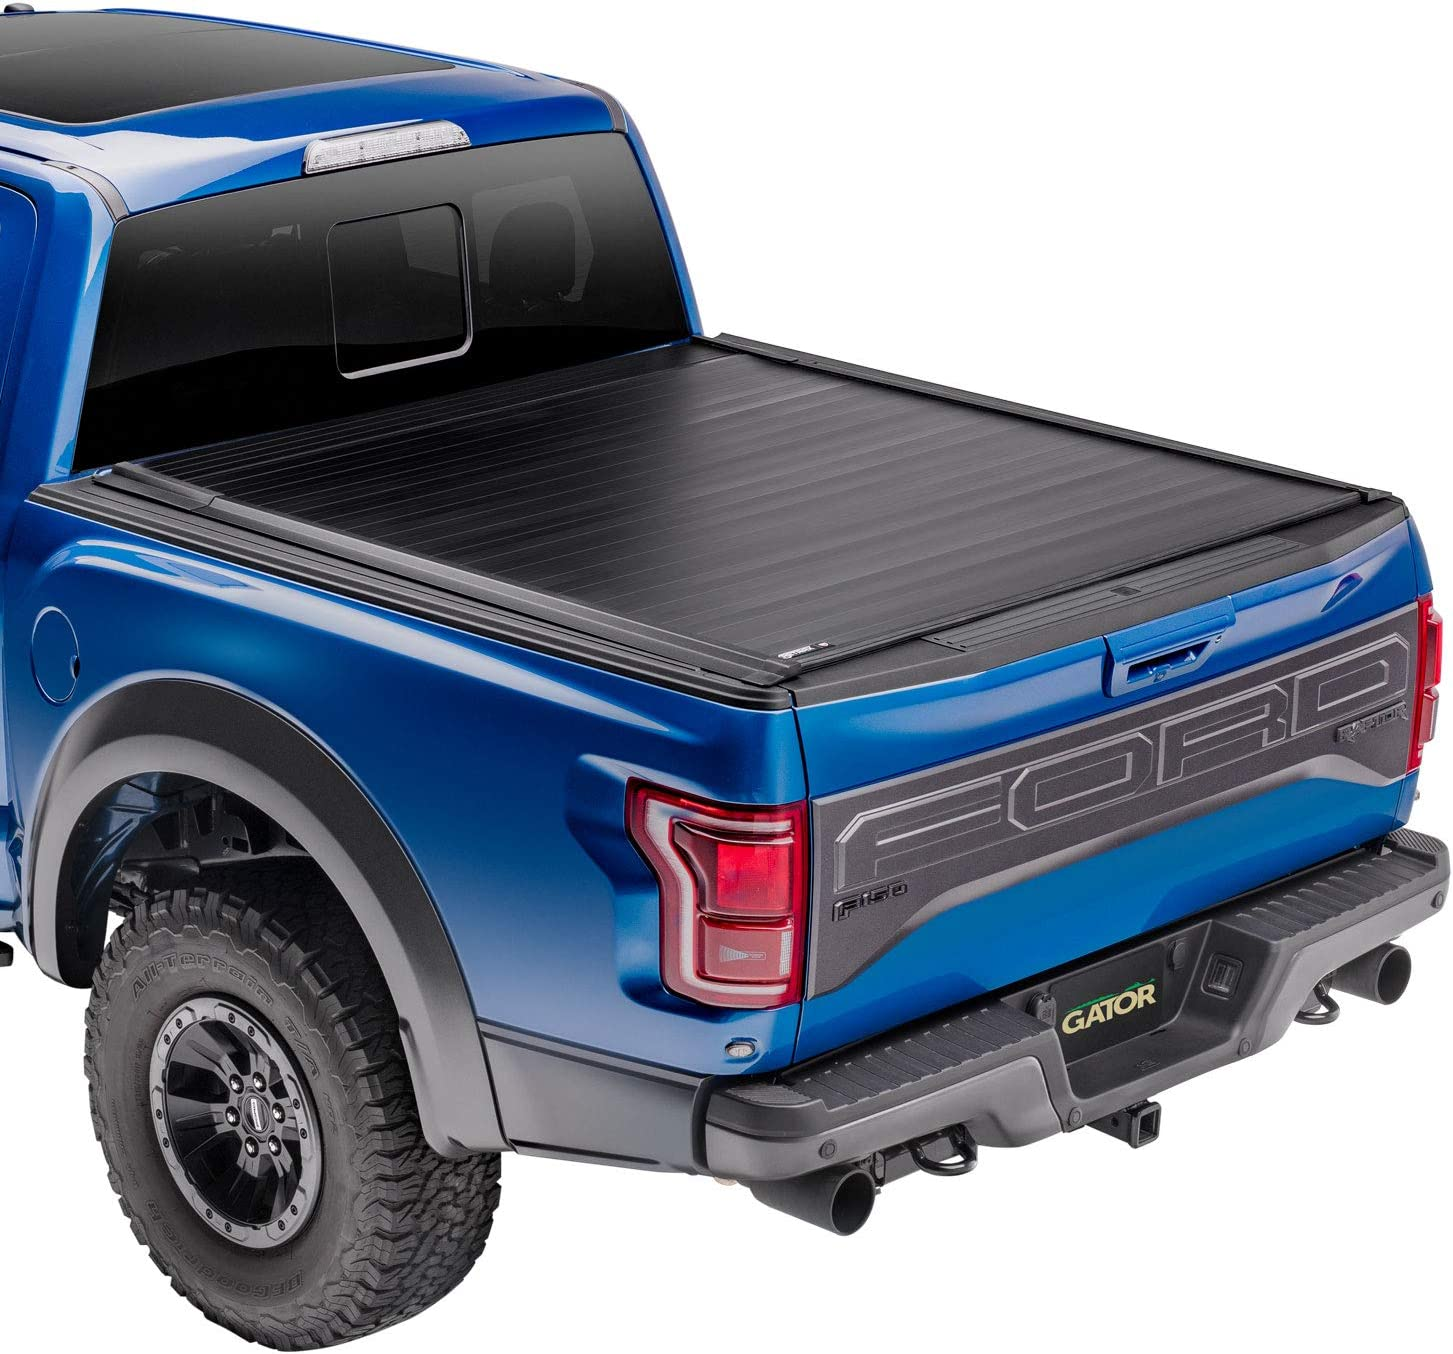 """Gator Recoil Retractable Truck Bed Tonneau Cover   G30378   Fits 2021 Ford F-150 5' 7"""" Bed (67.1"""")"""